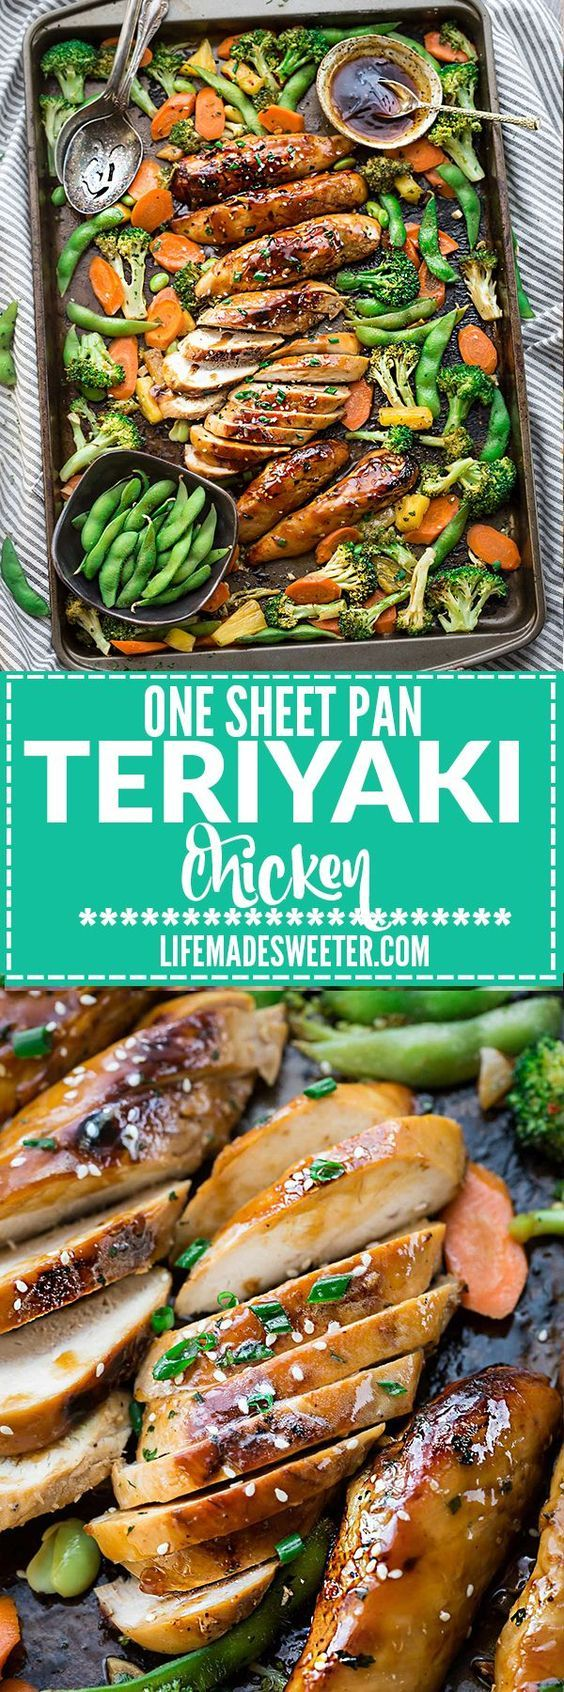 137 best One Pot - One Pan - One Skillet RECIPES images on Pinterest ...